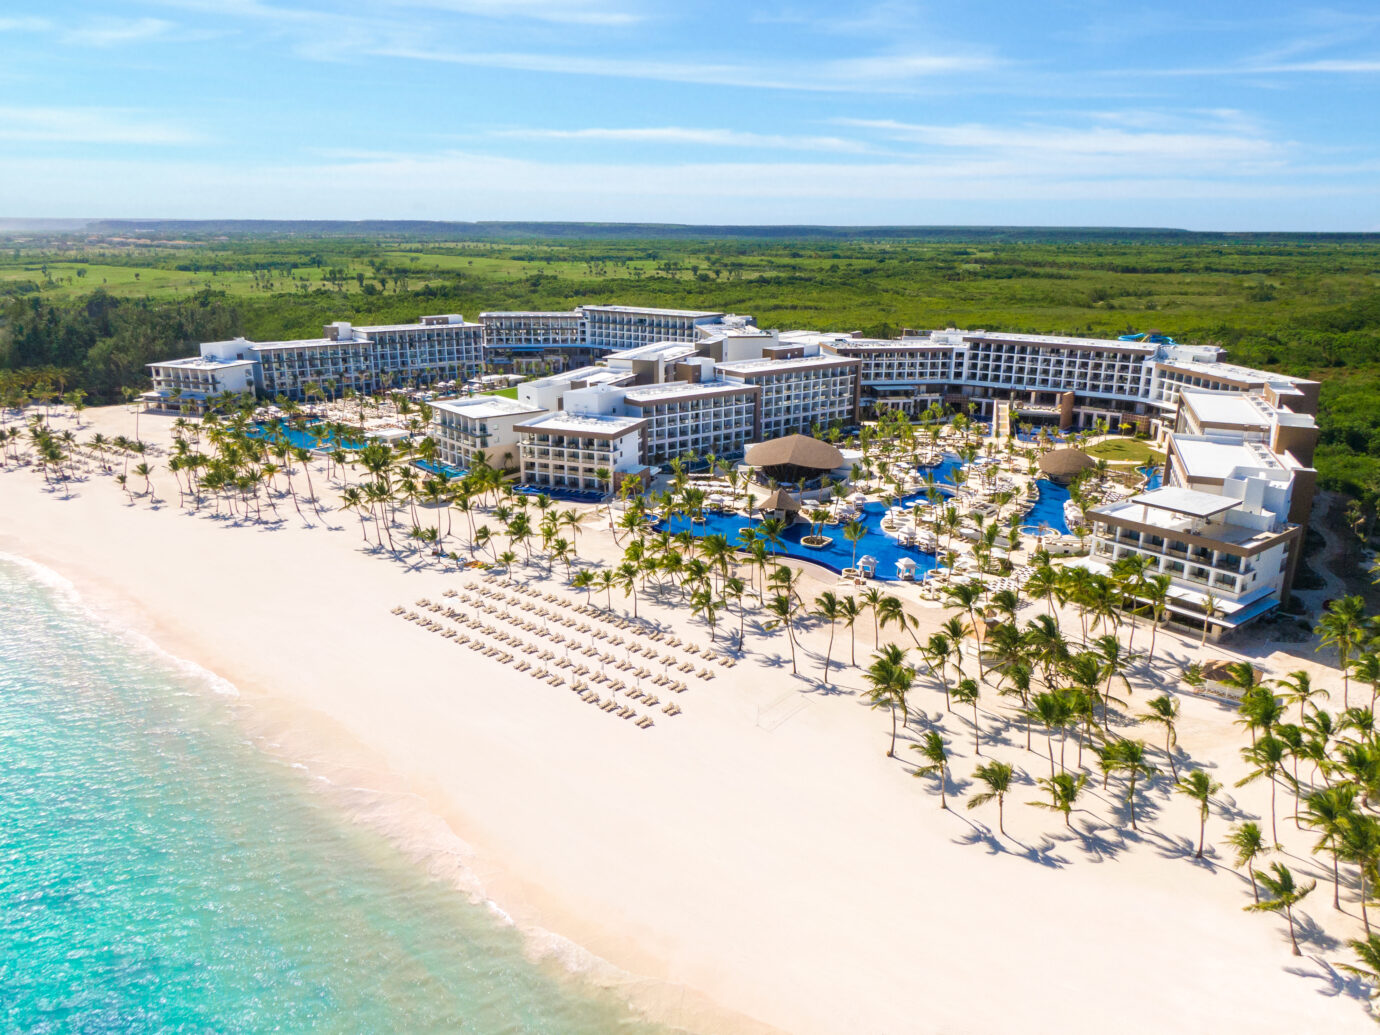 Hyatt Ziva and Zilara Cap Cana Resorts